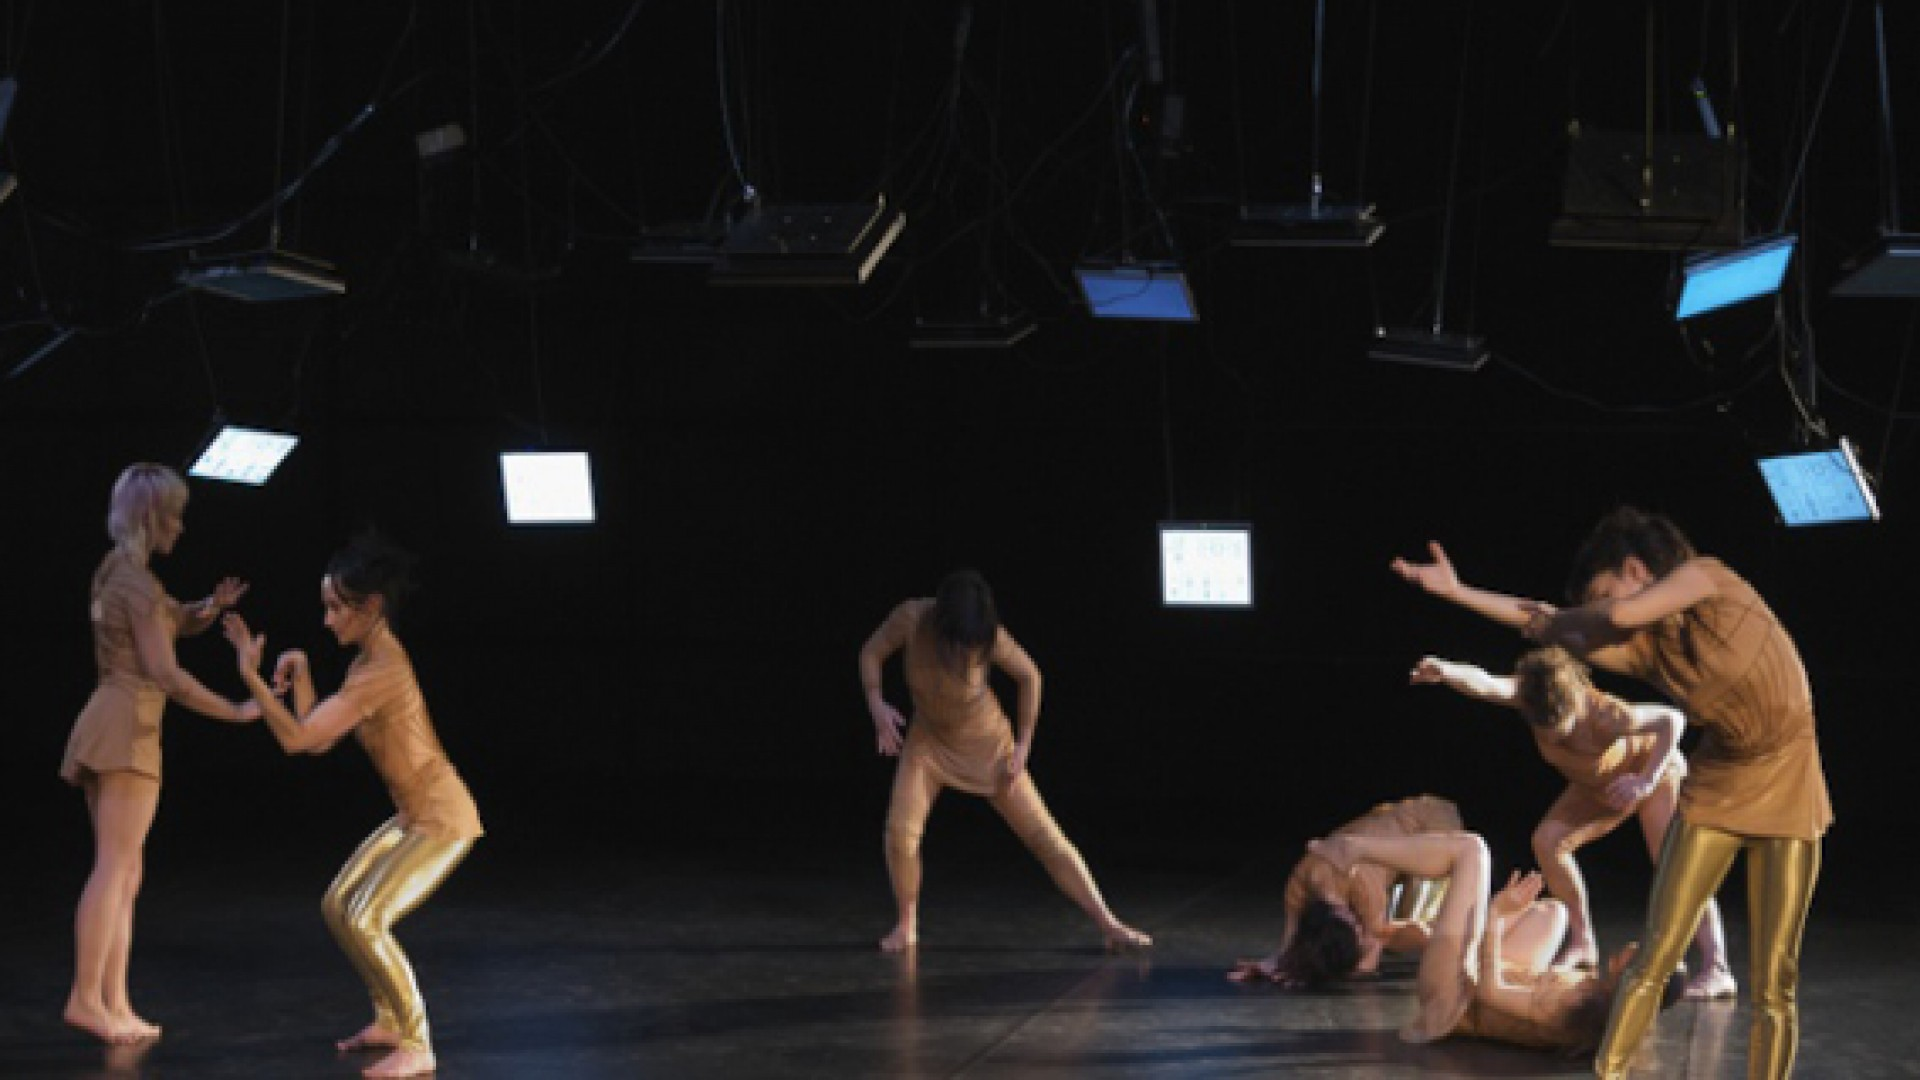 Dance and technology